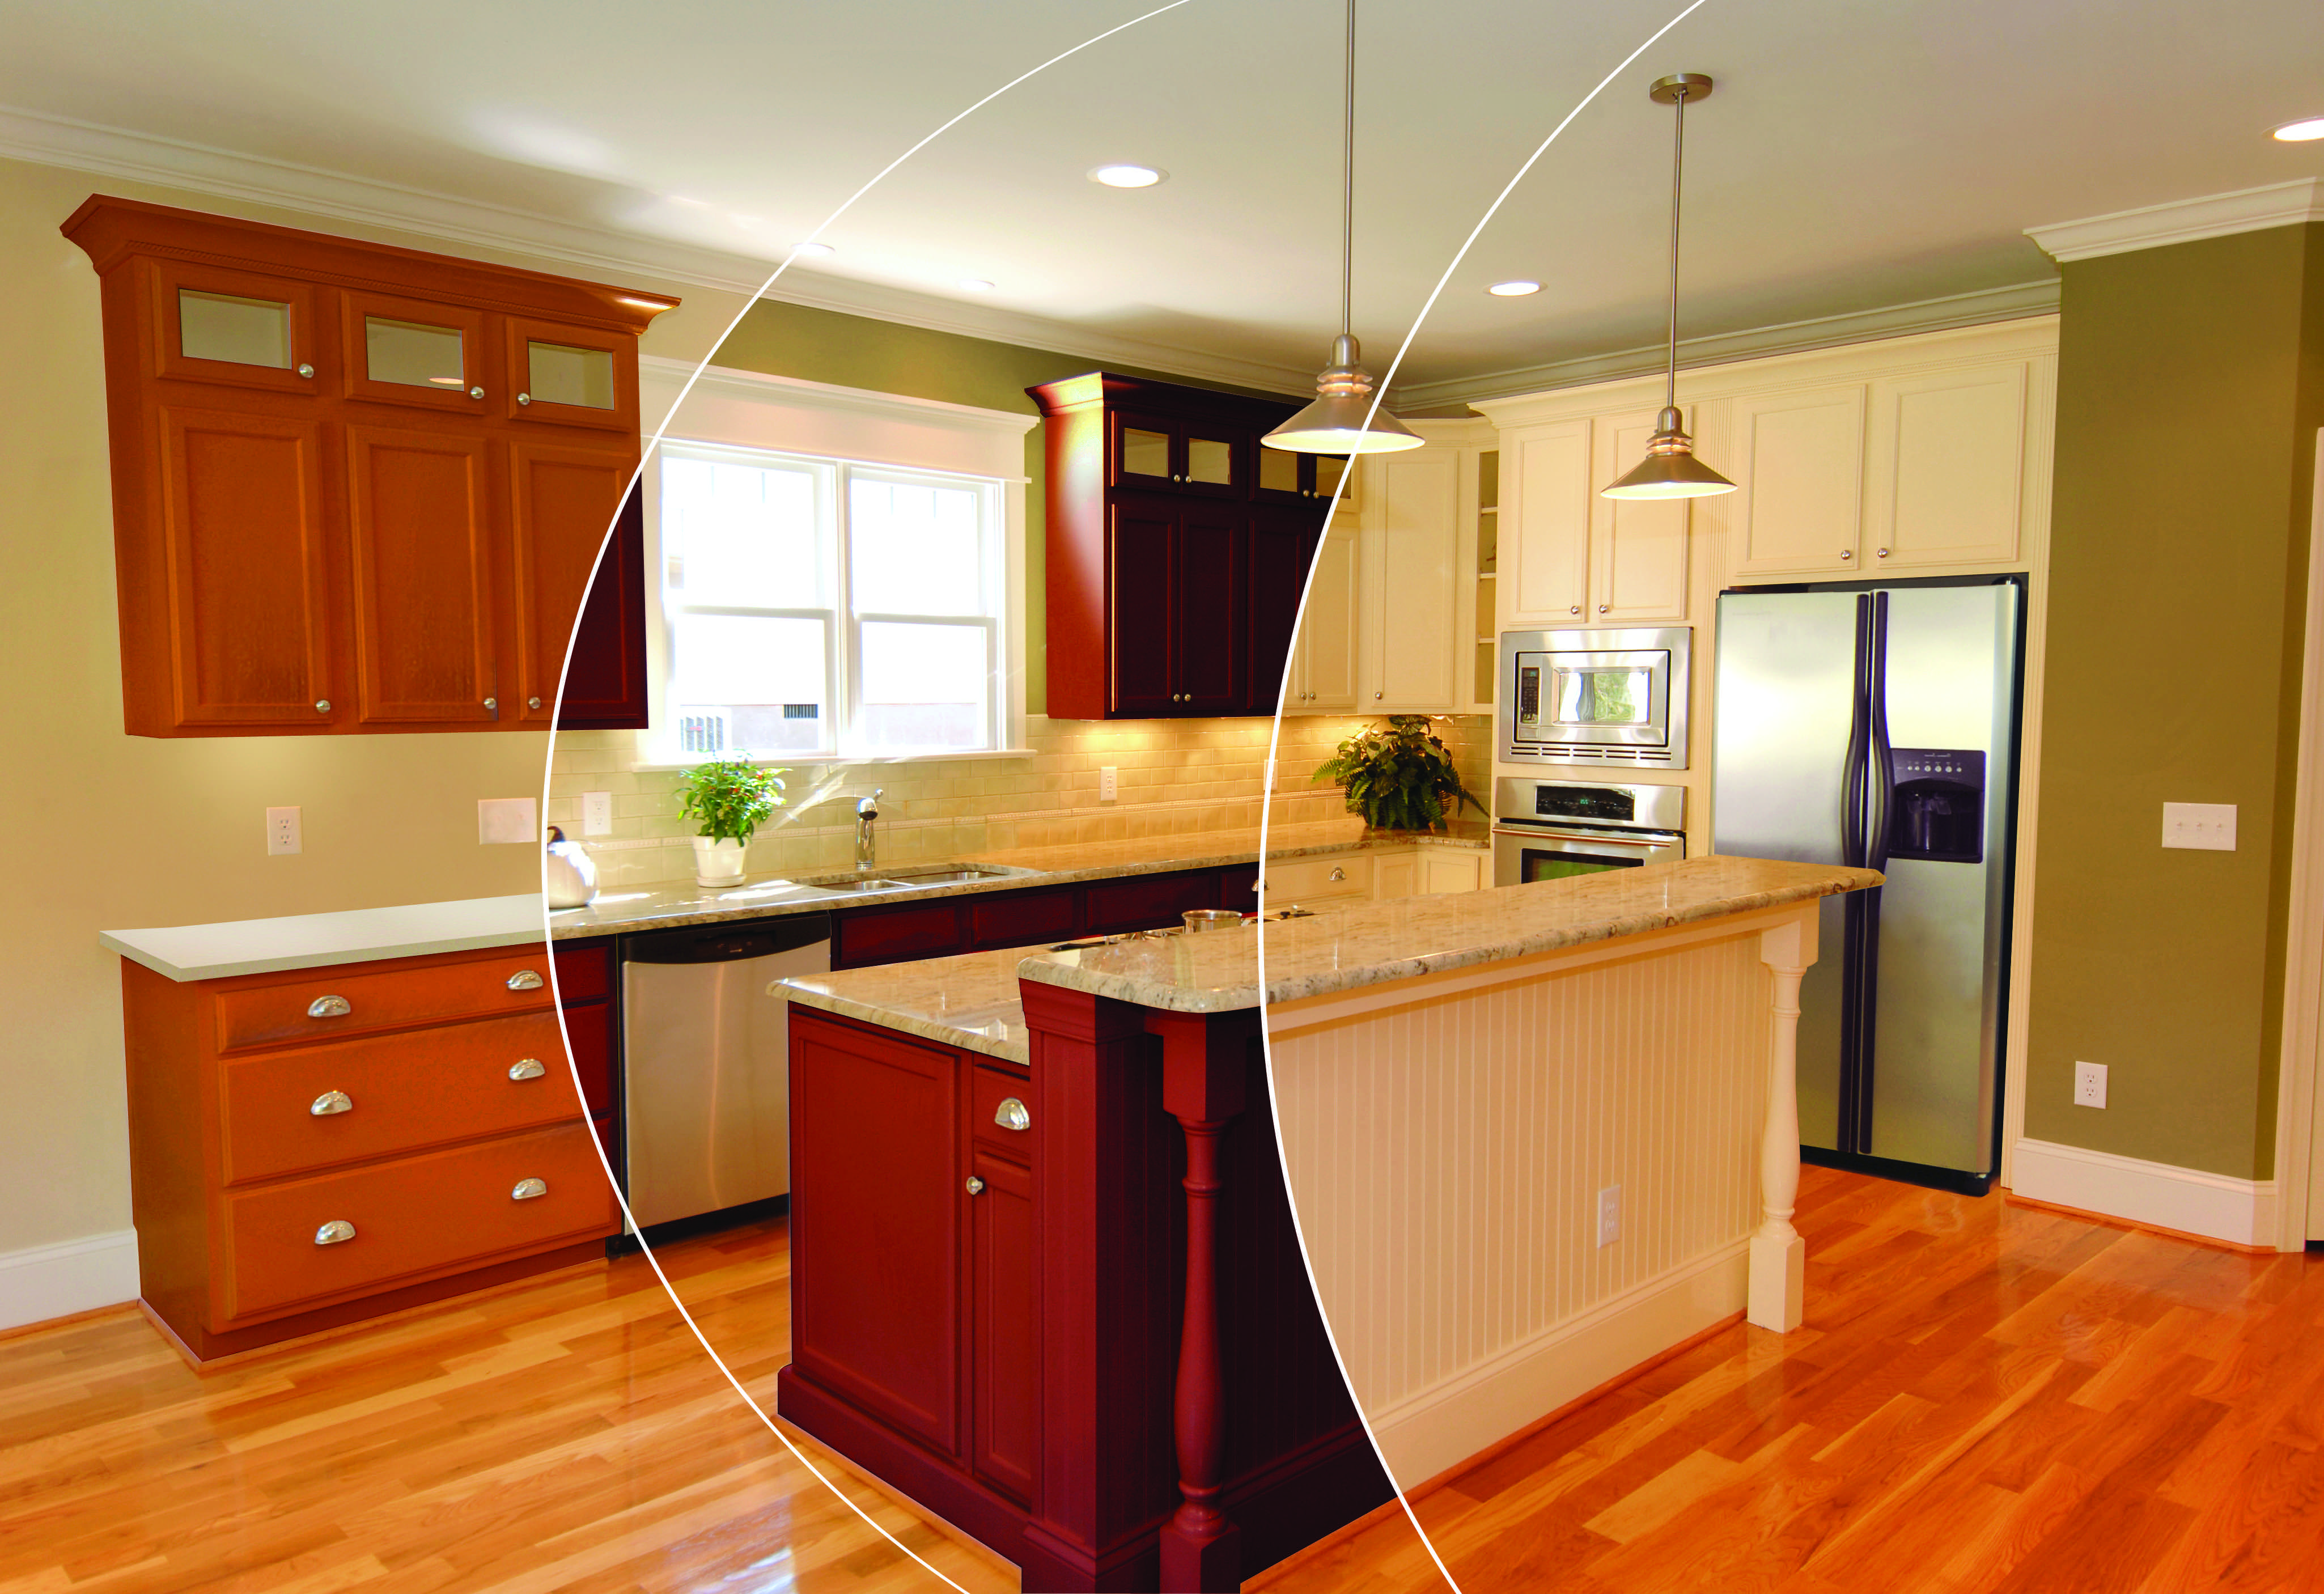 Renew Refinish Wood and Floors Affordable